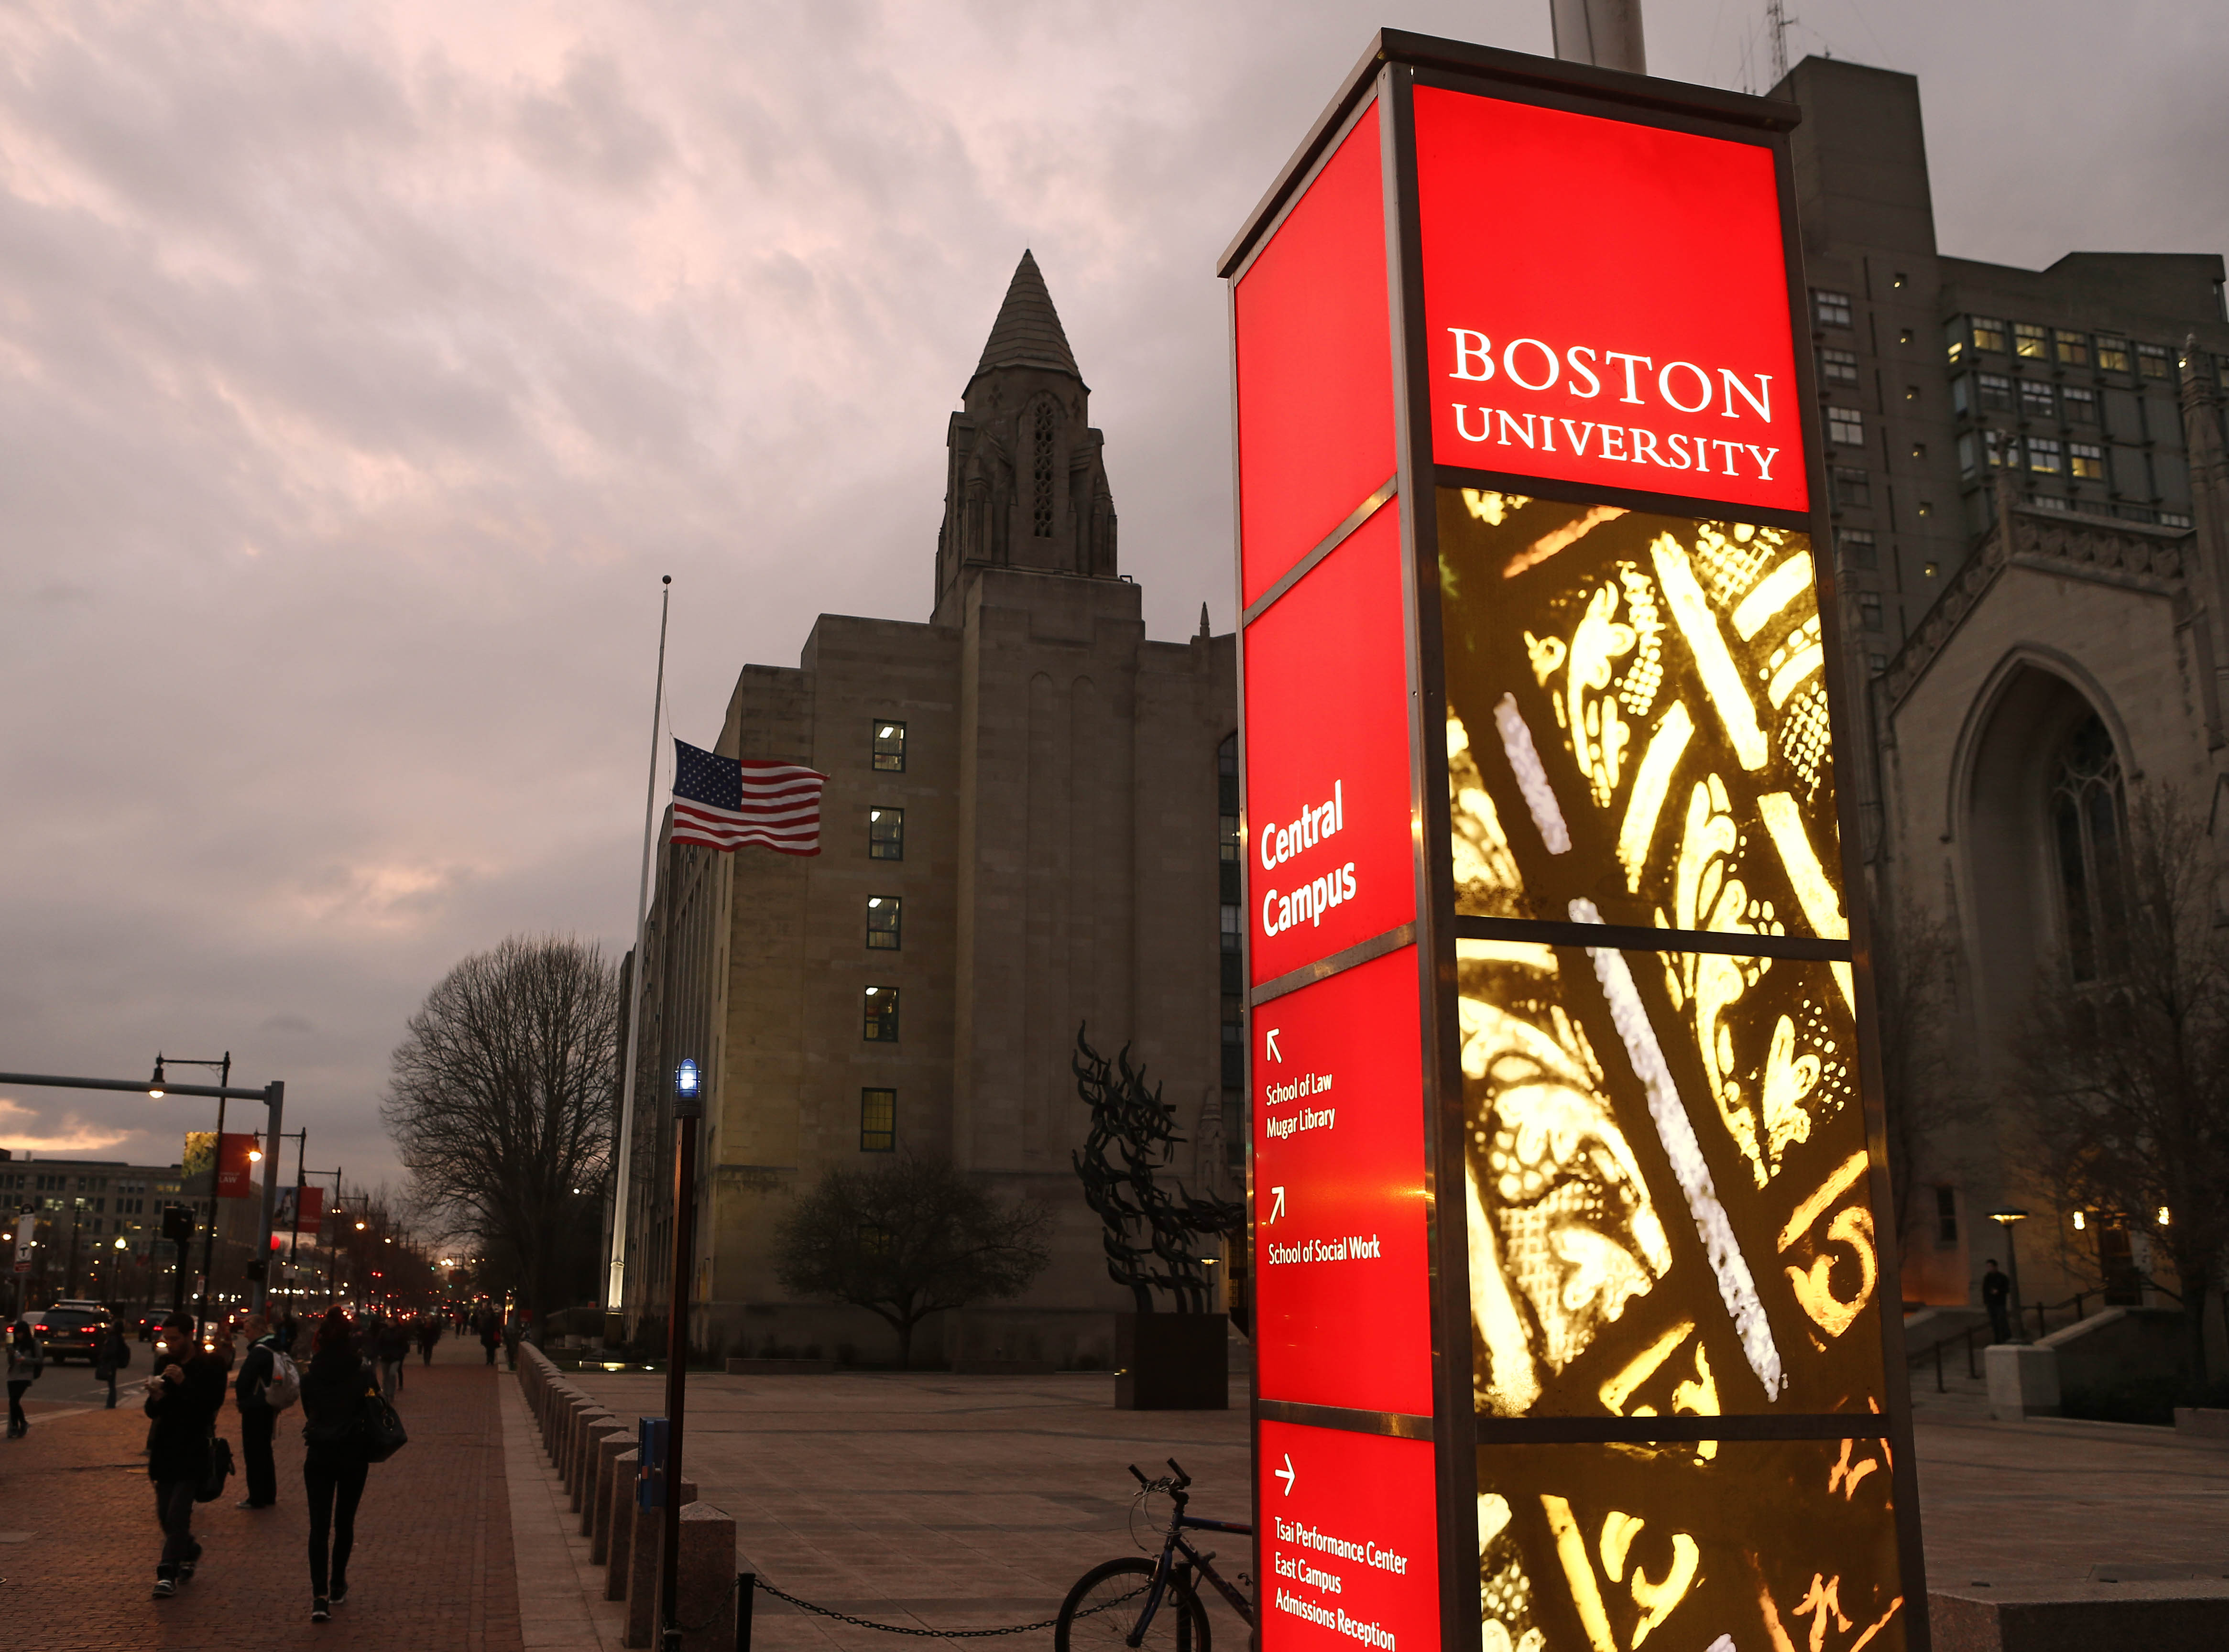 Boston University Academy students in good academic and disciplinary  standing enjoy guaranteed admission to Boston University.